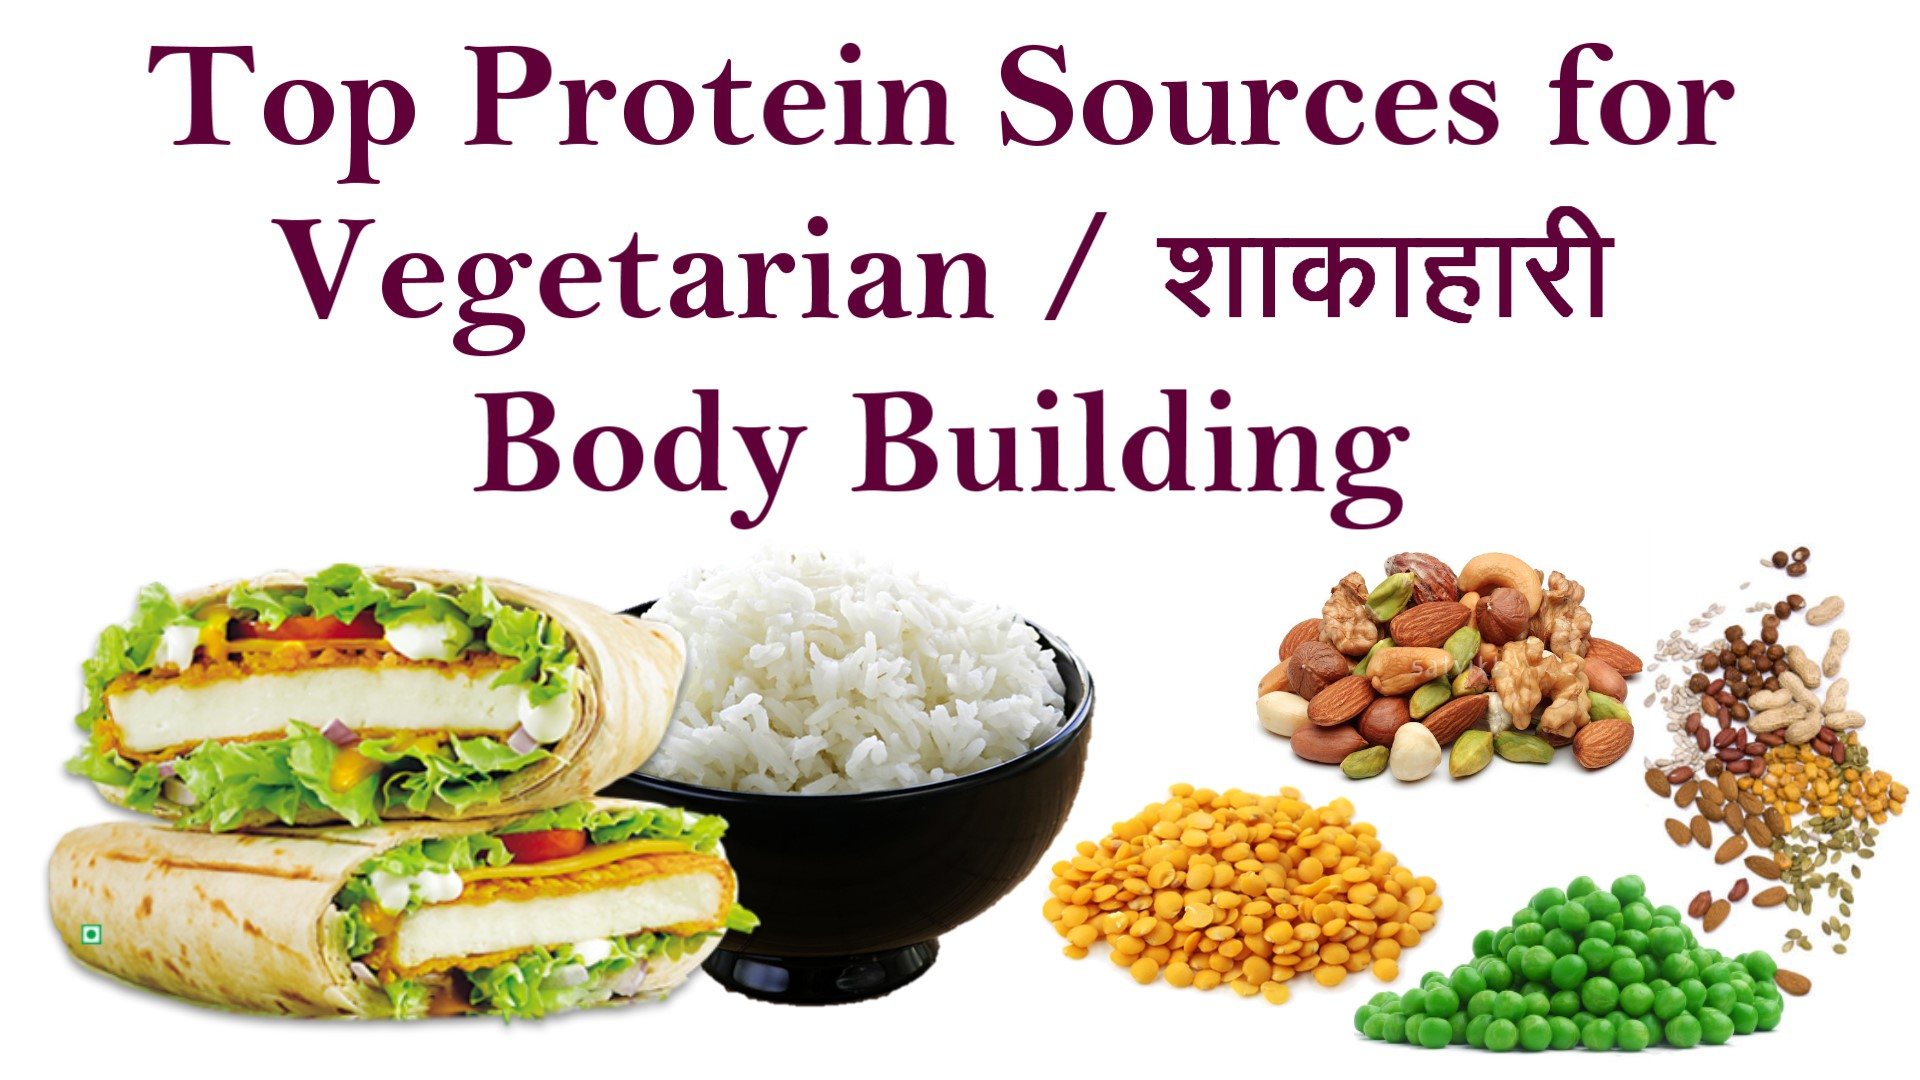 Top Vegetarian COMPLETE PROTEIN Sources For Body Building